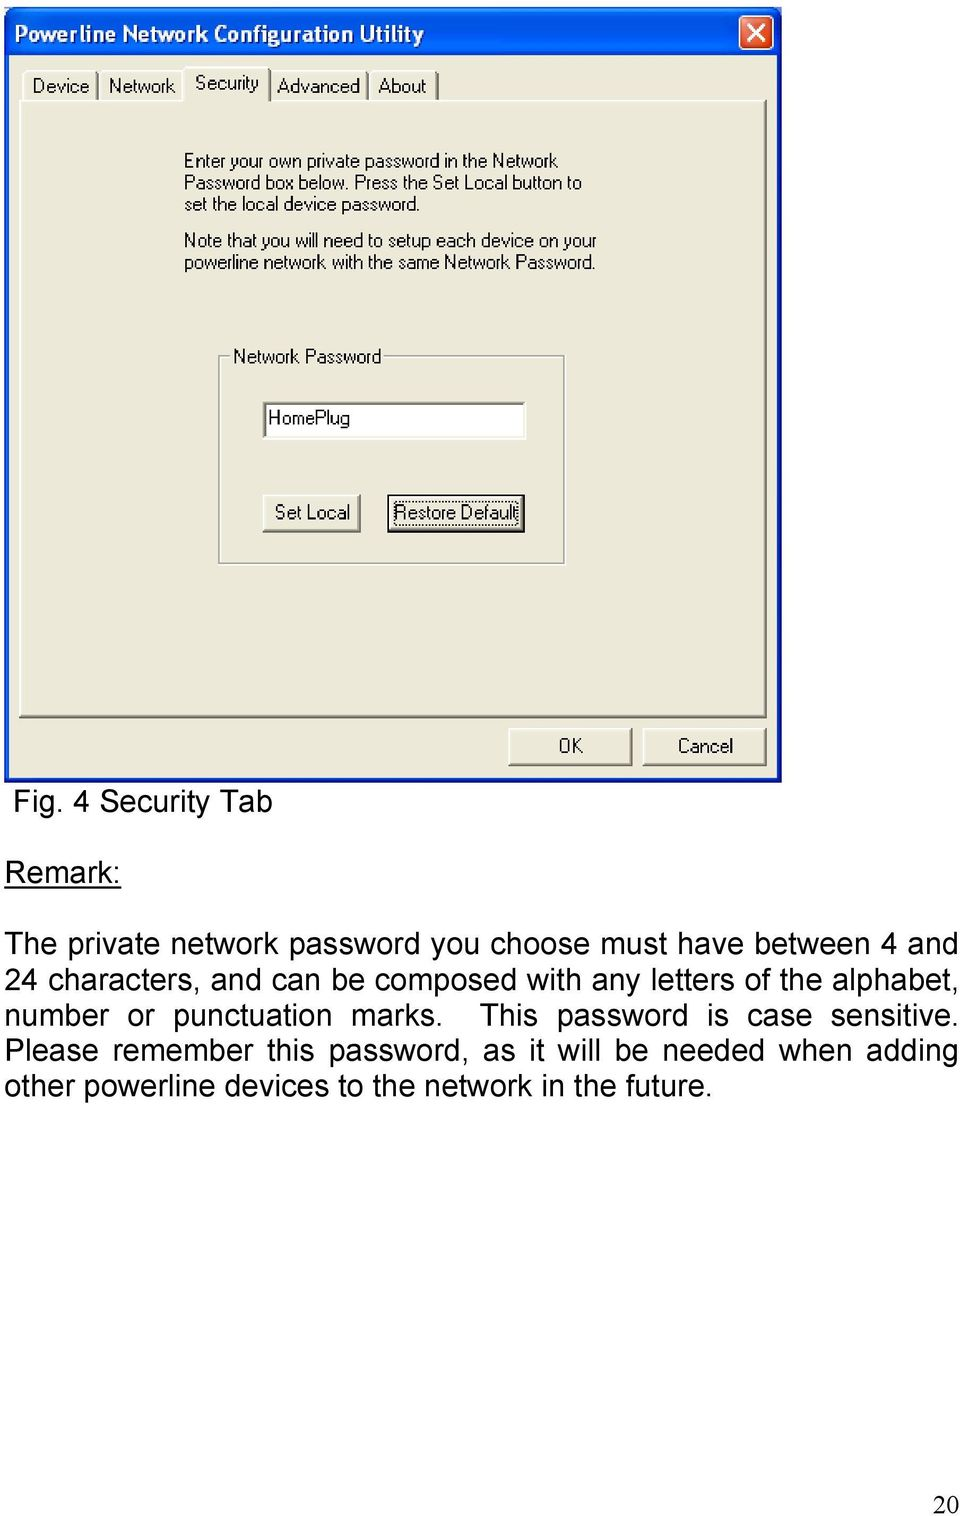 punctuation marks. This password is case sensitive.